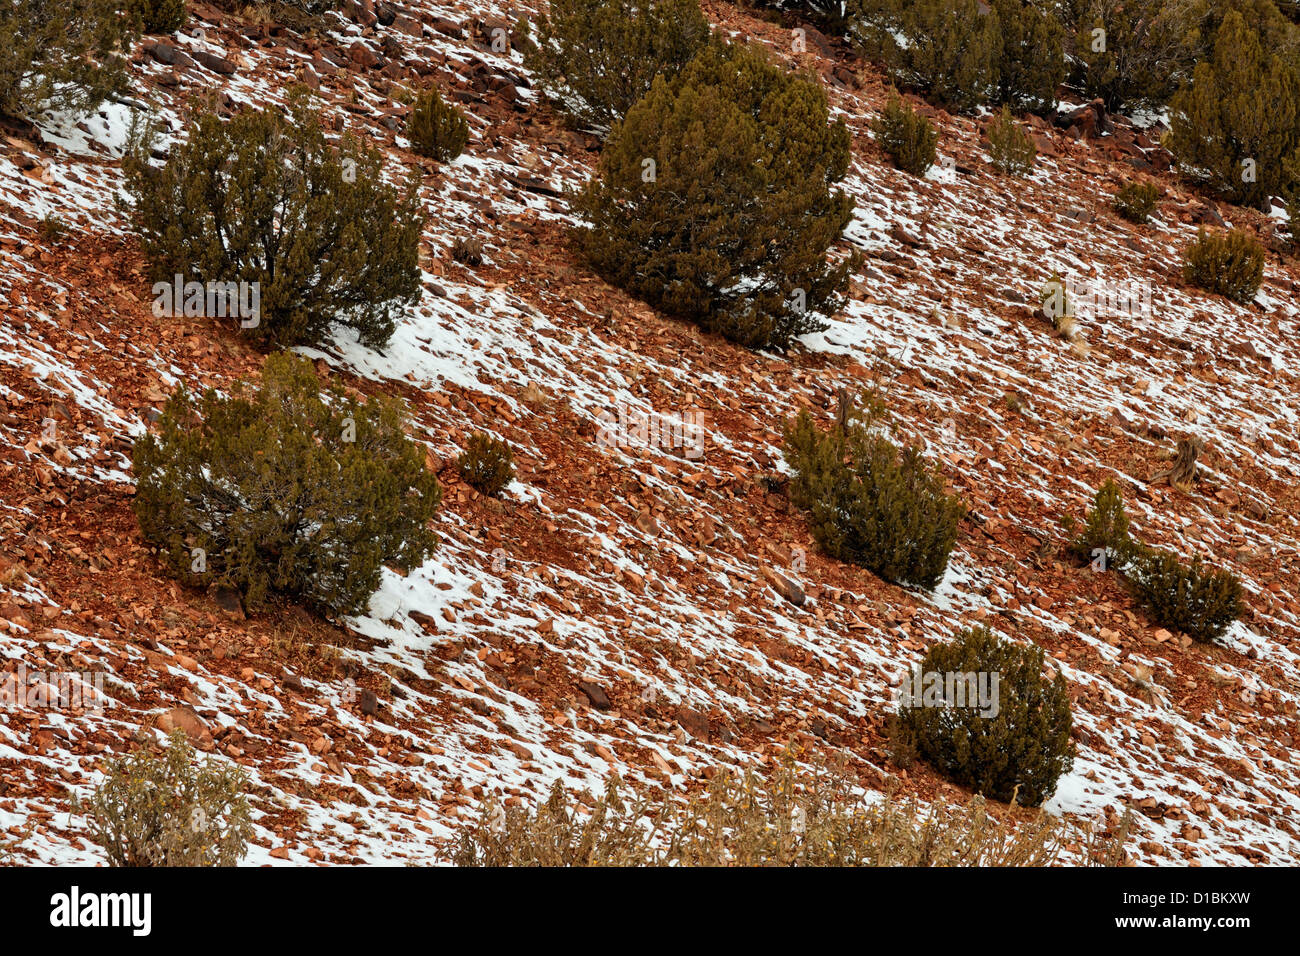 A dusting of snow in the Cibola National Forest, near Mountainair, New Mexico, USA Stock Photo